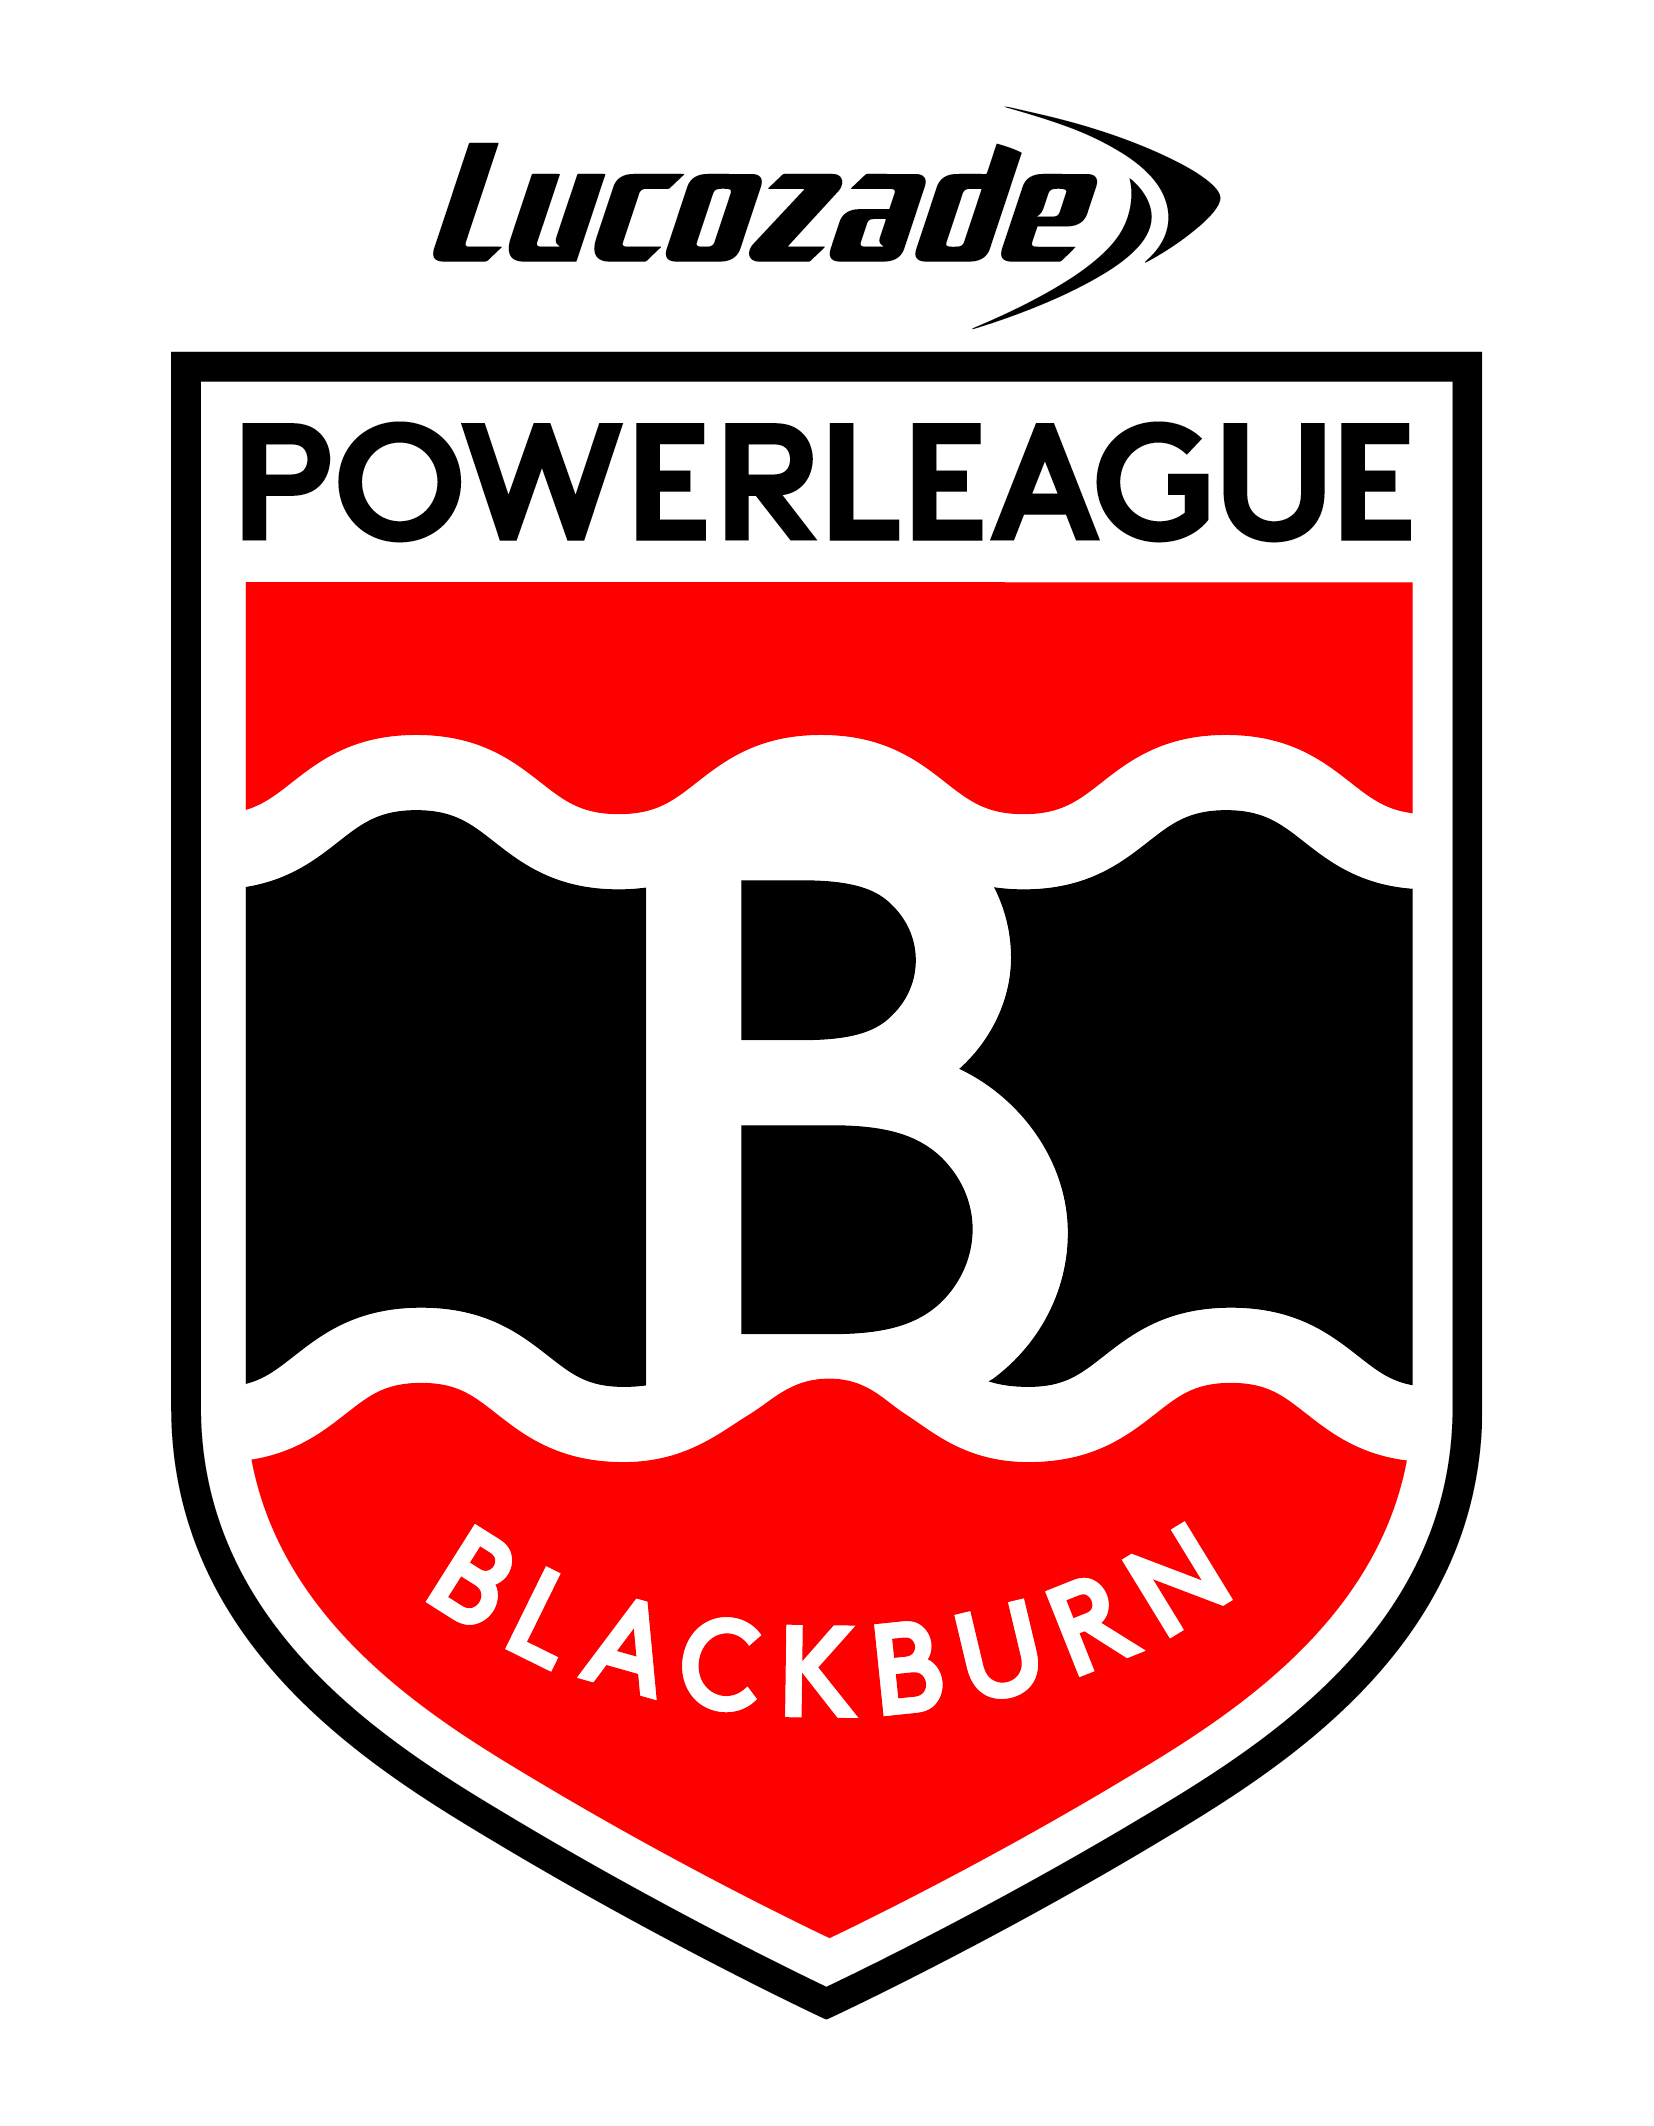 Powerleague Blackburn Crest